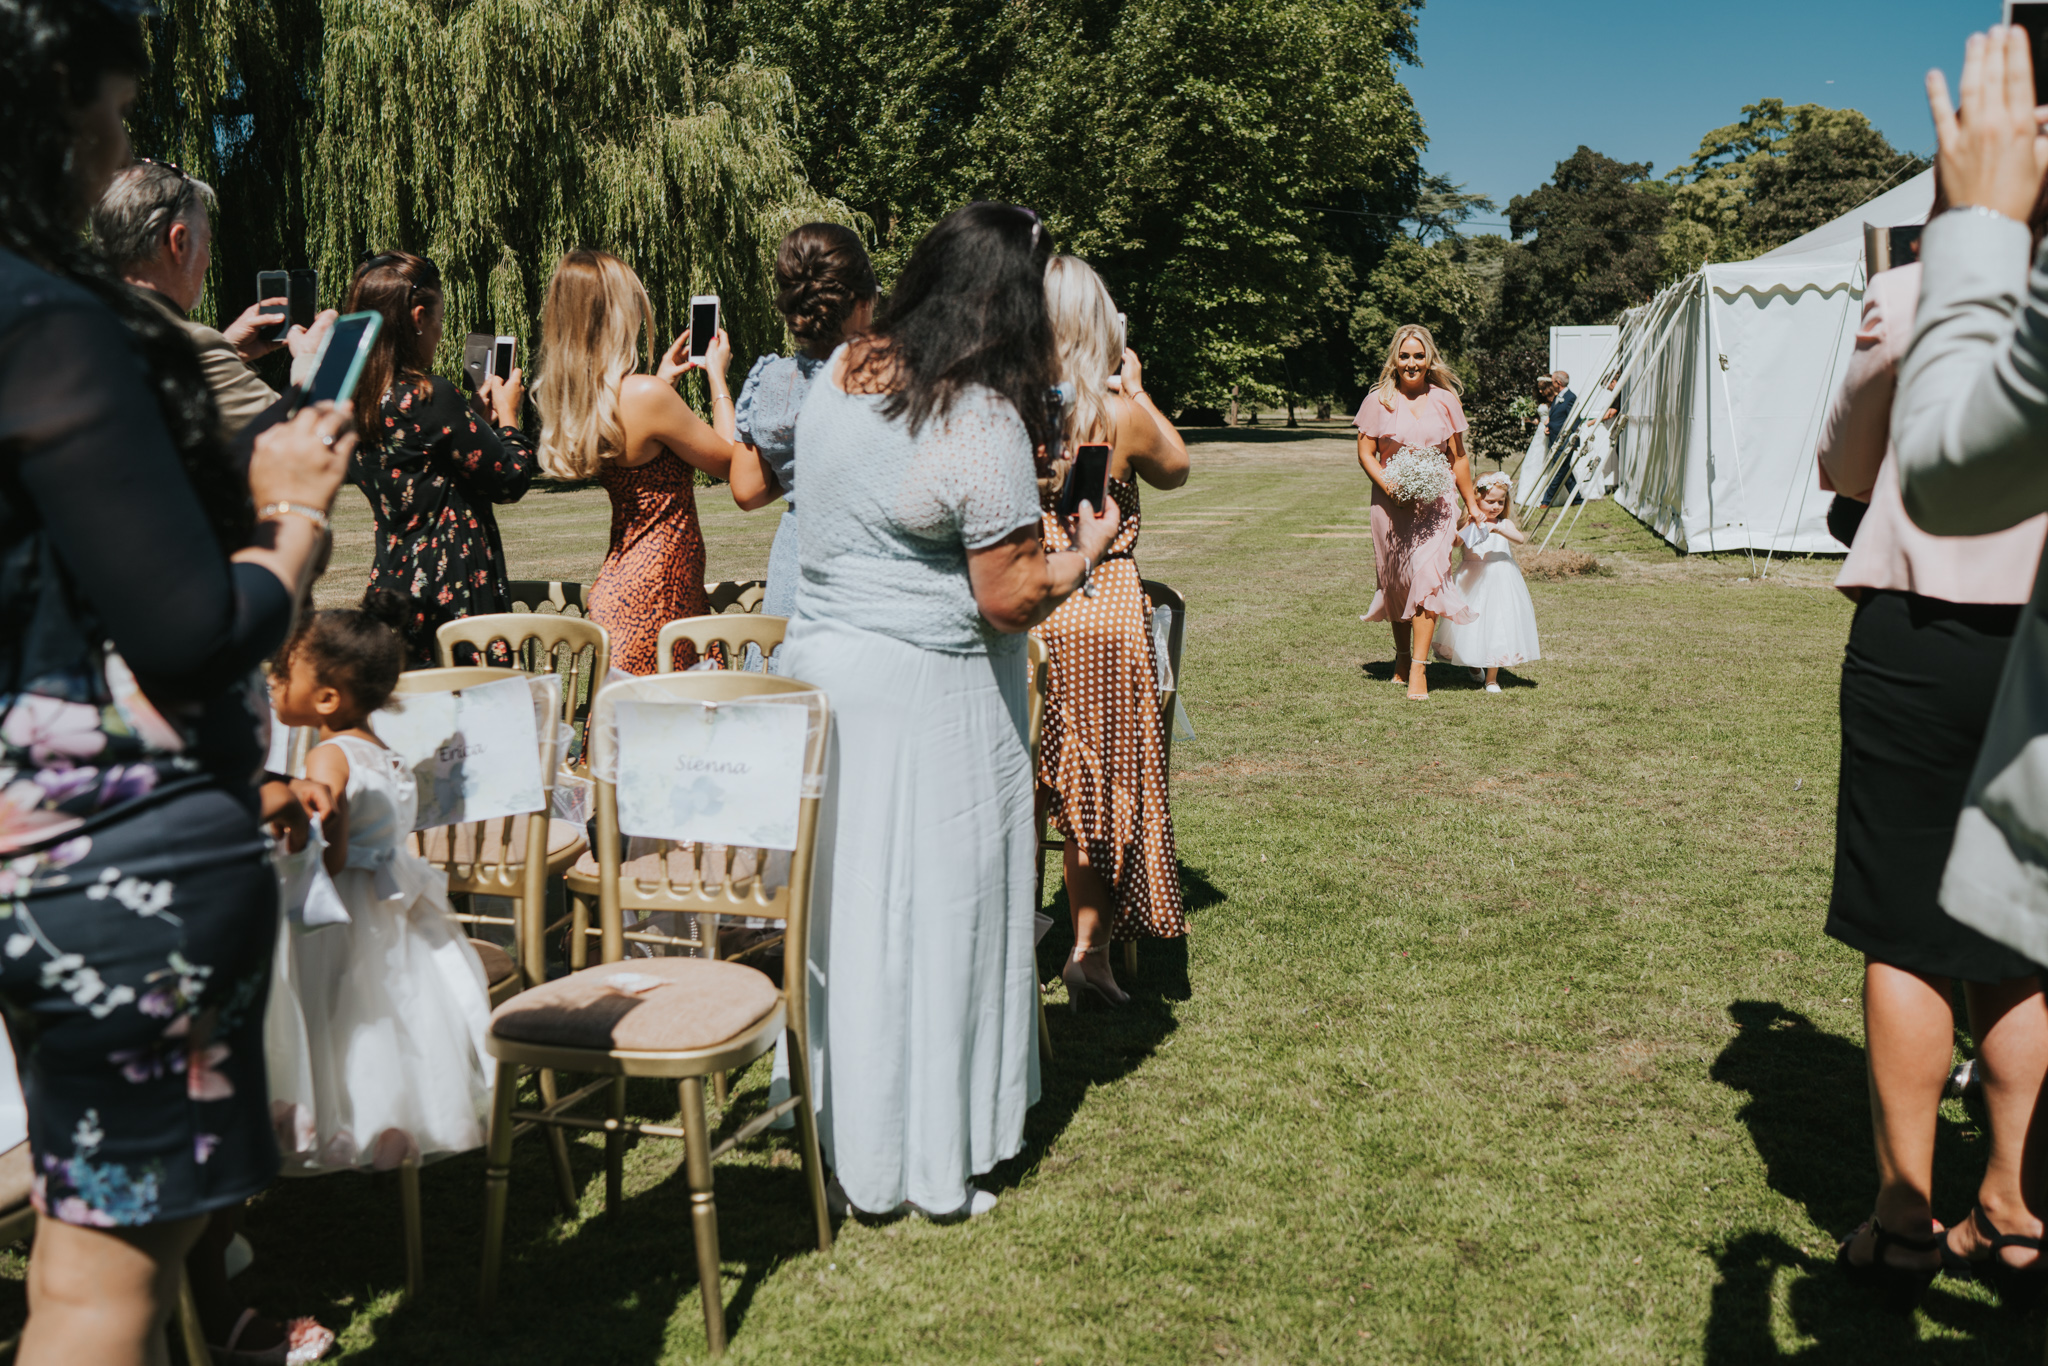 Sophie-Christian-Prested-Hall-DIY-Boho-Outdoor-Wedding-Grace-Elizabeth-Alternative-Wedding-Photographer-Colchester-Essex (29 of 113).jpg